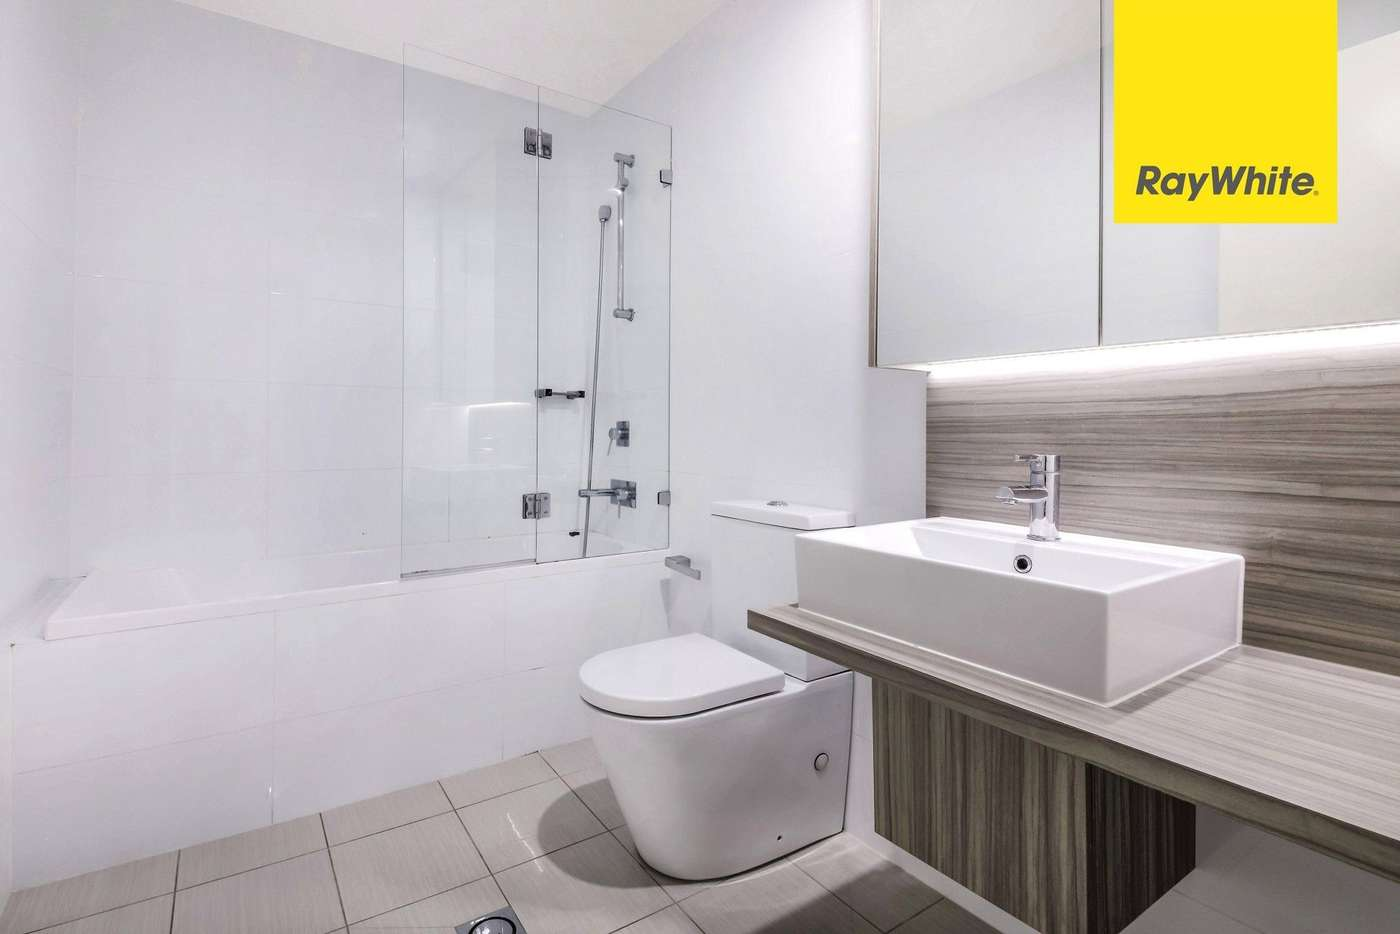 Fifth view of Homely apartment listing, 307/1 Vermont Crescent, Riverwood NSW 2210